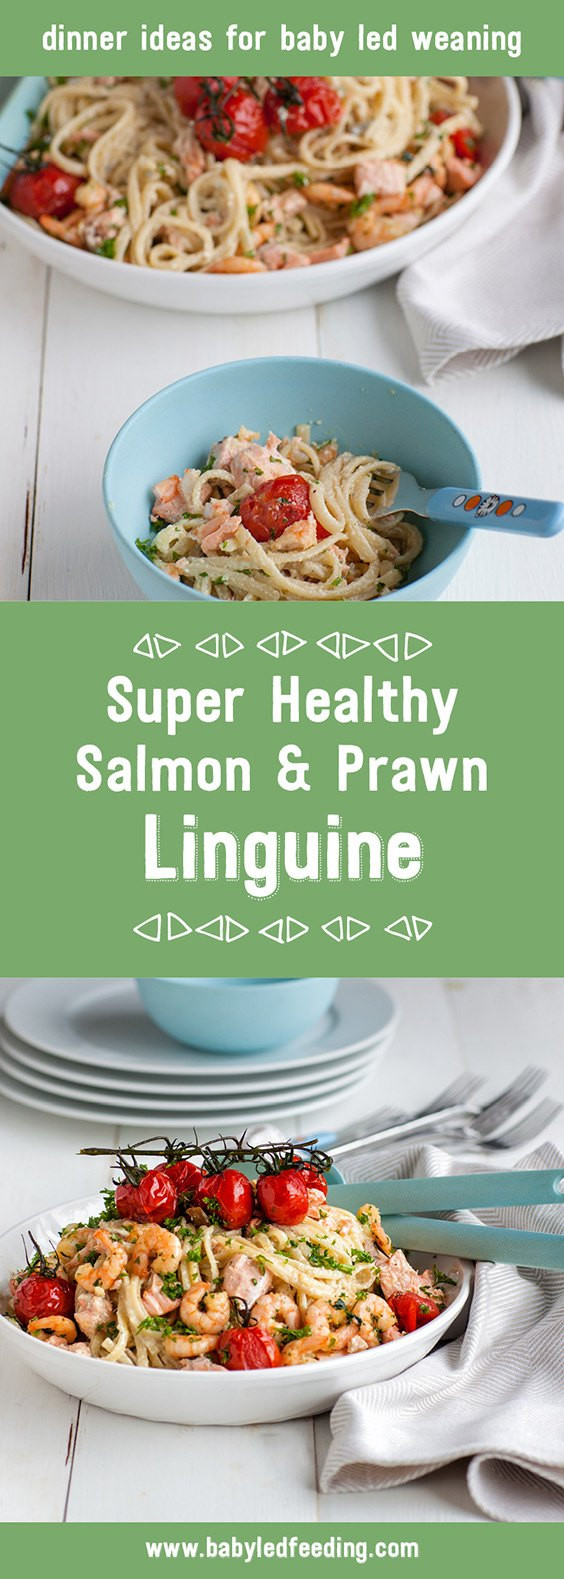 Super Healthy Dinners  Super Healthy Salmon and Prawn Linguine from Baby Led